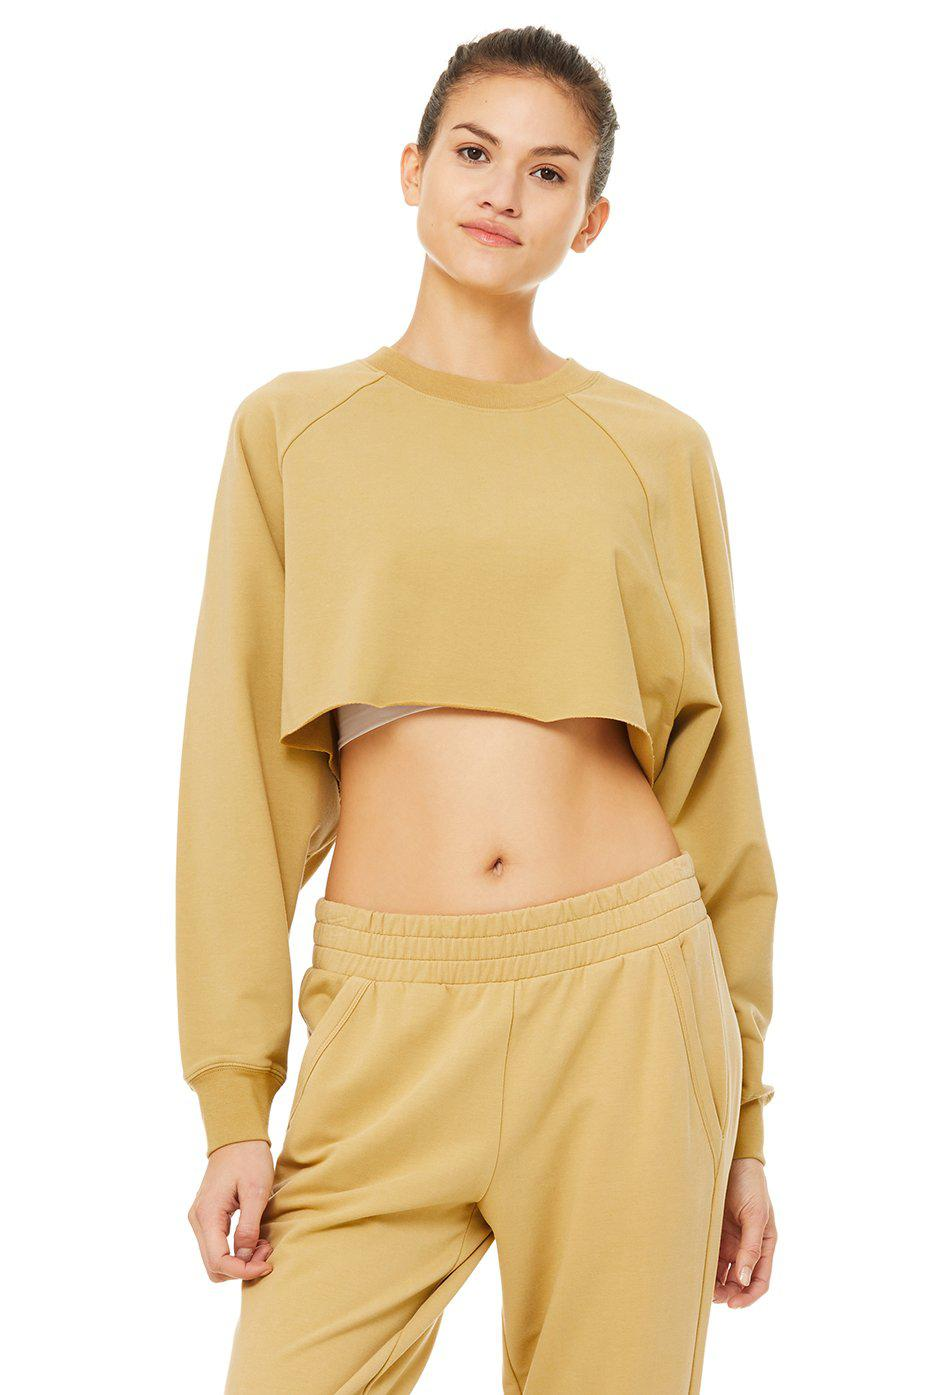 Double Take Pullover - Honey